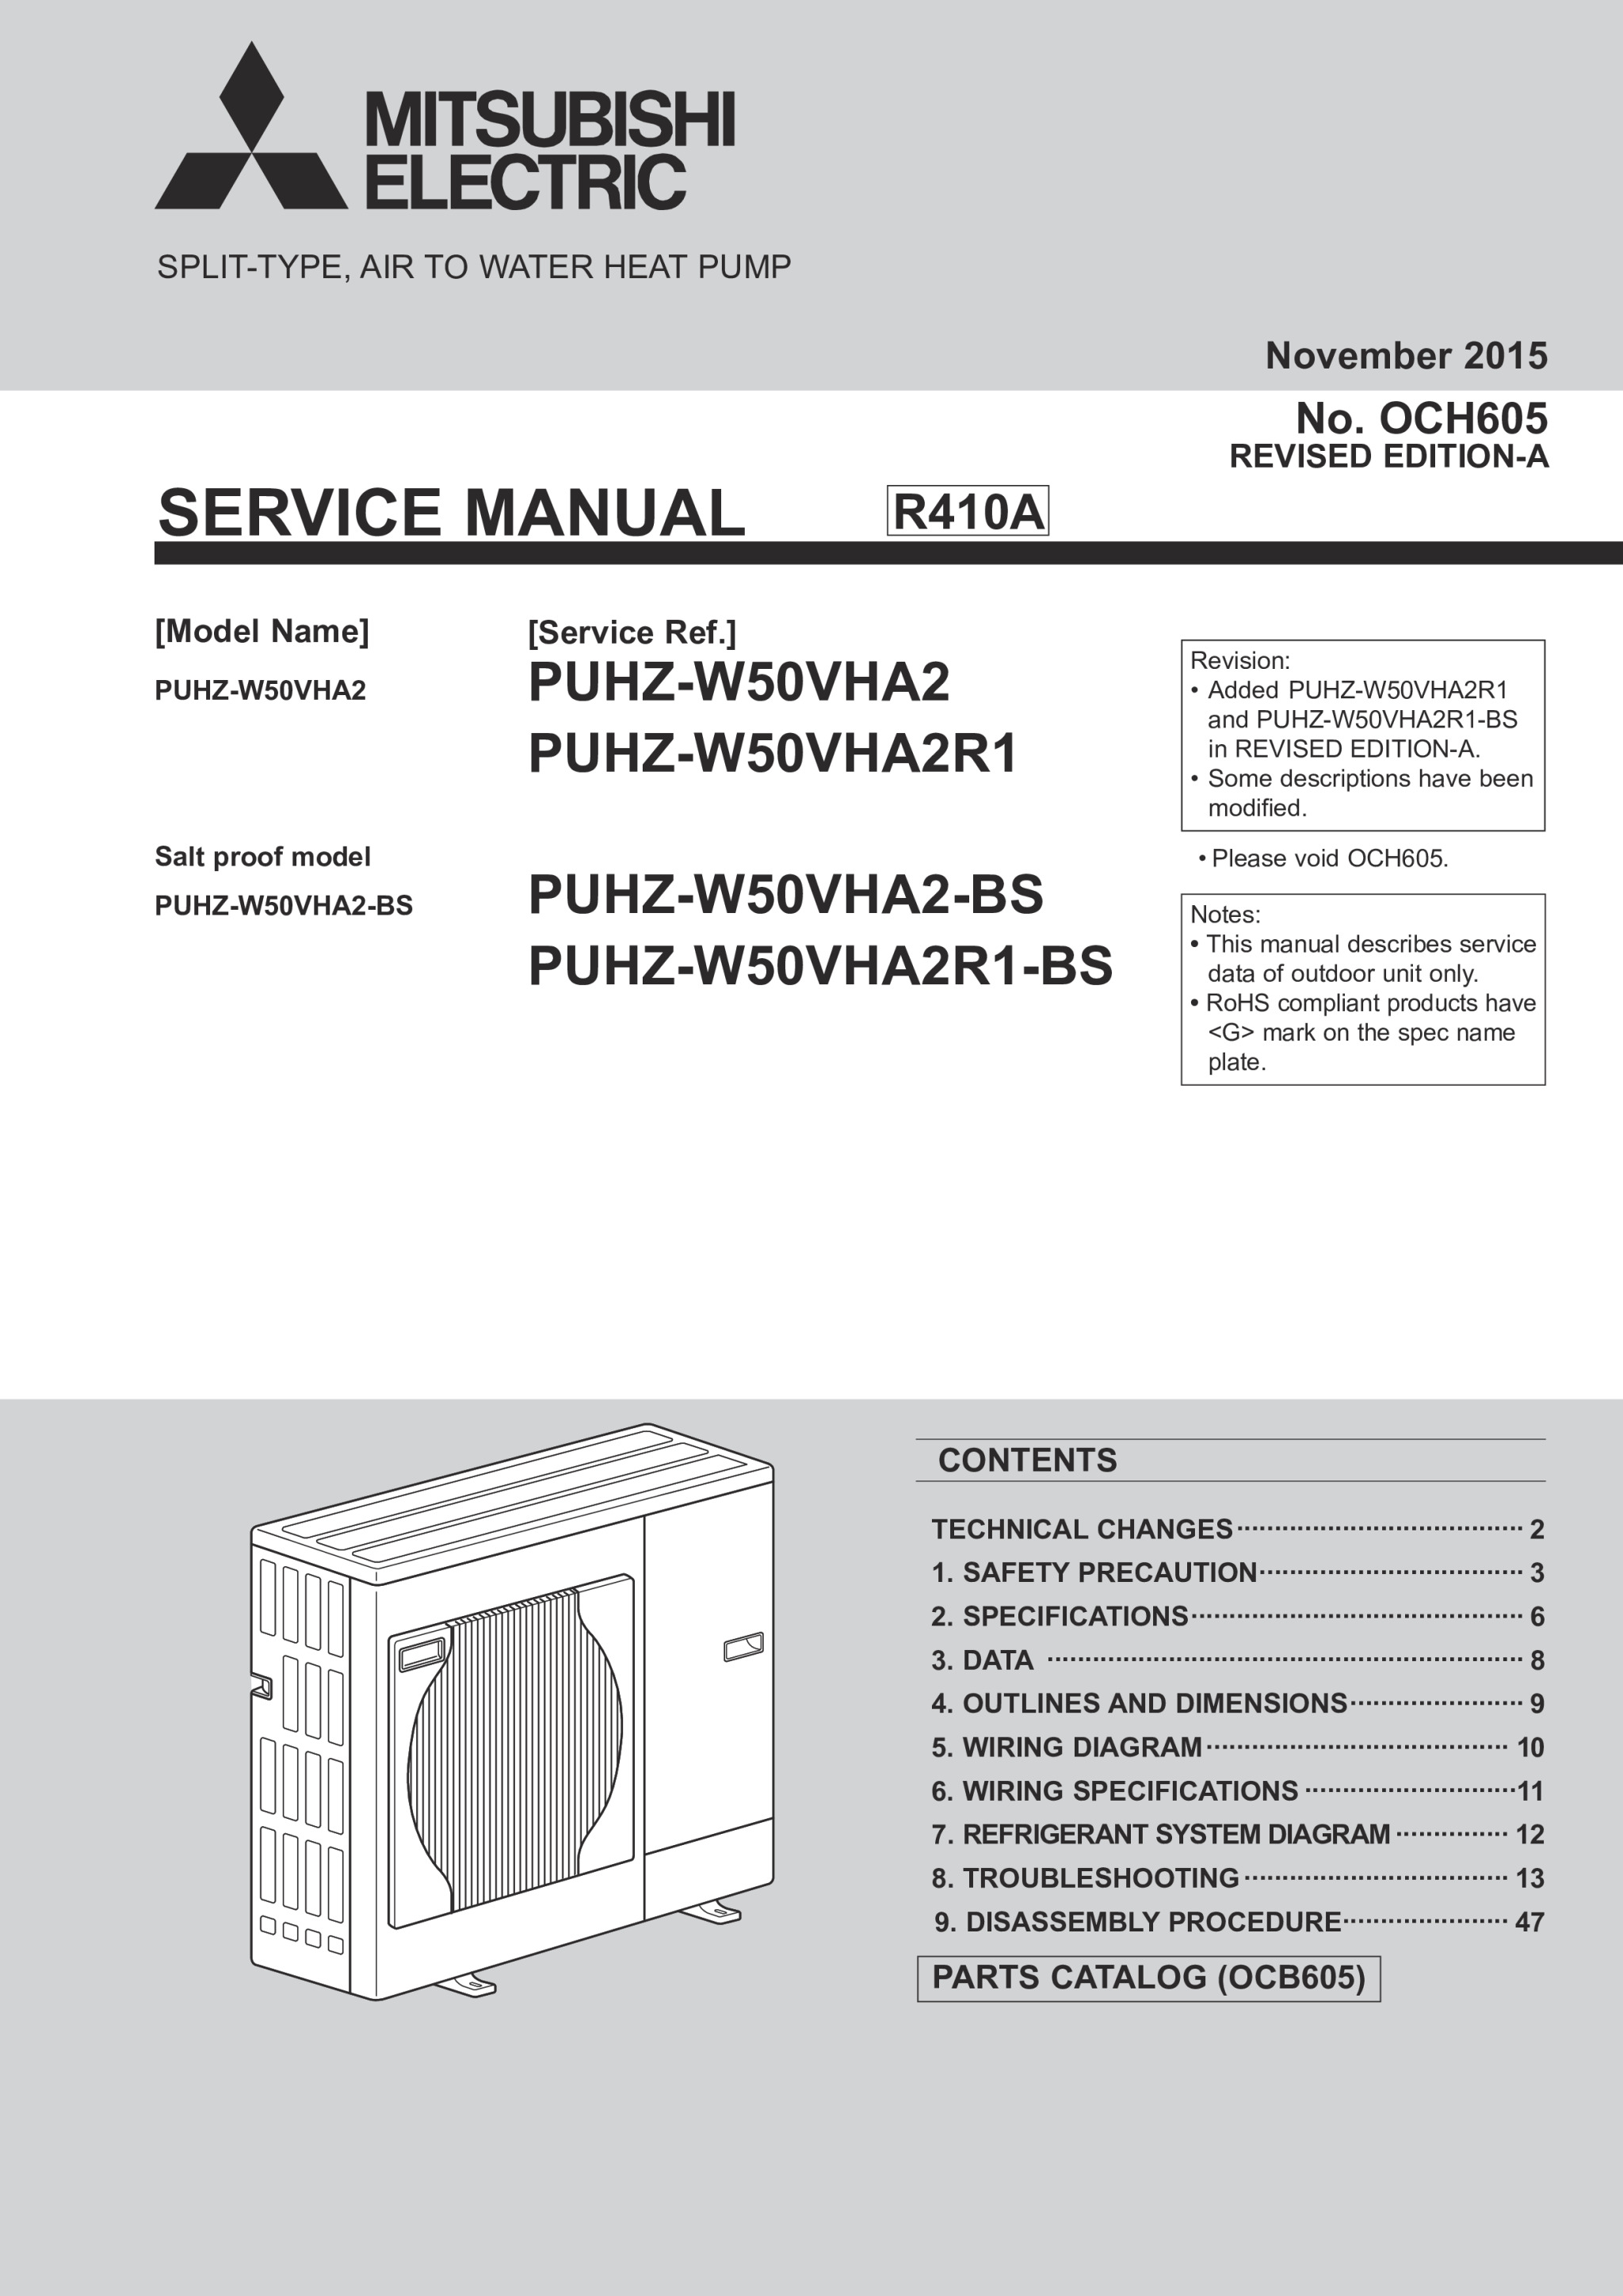 ecodan puhz w50vha bs service manual och605a mitsubishi electric rh library mitsubishielectric co uk 2003 Mitsubishi Lancer Manual Cover Mitsubishi Montero Engine Manual